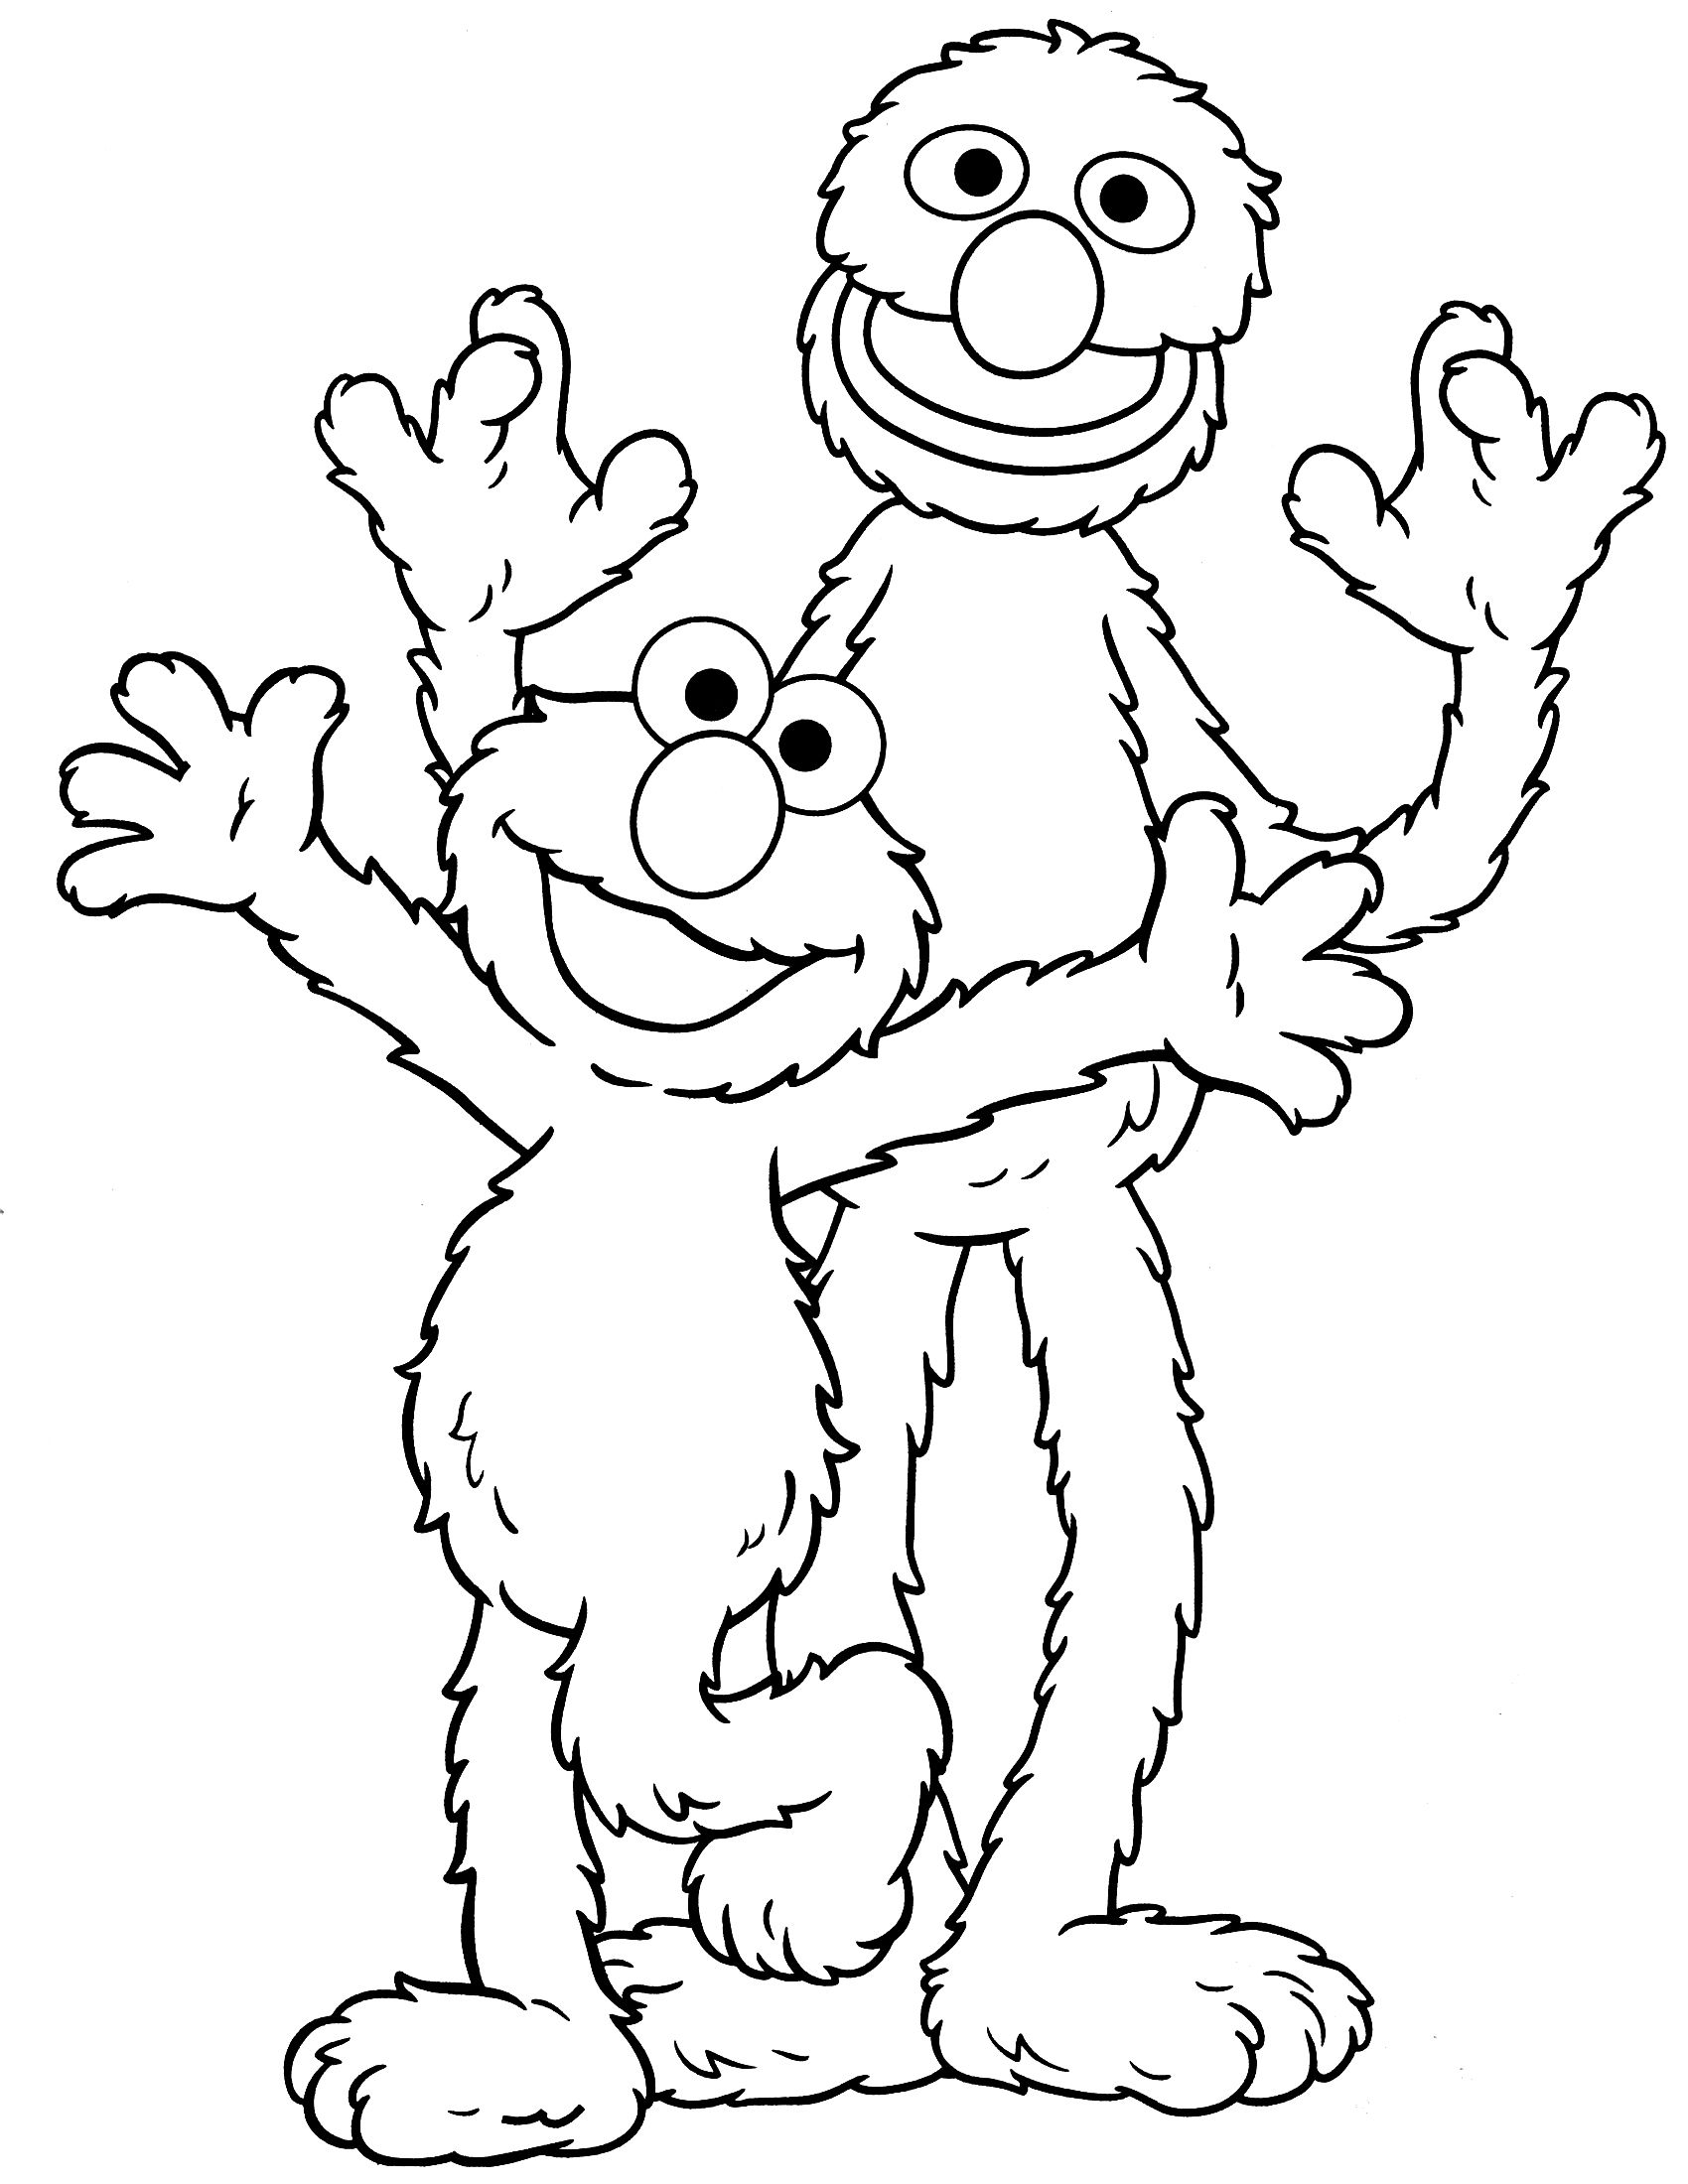 Sesame Street Coloring Pages Bert Free Printable Coloring Pages